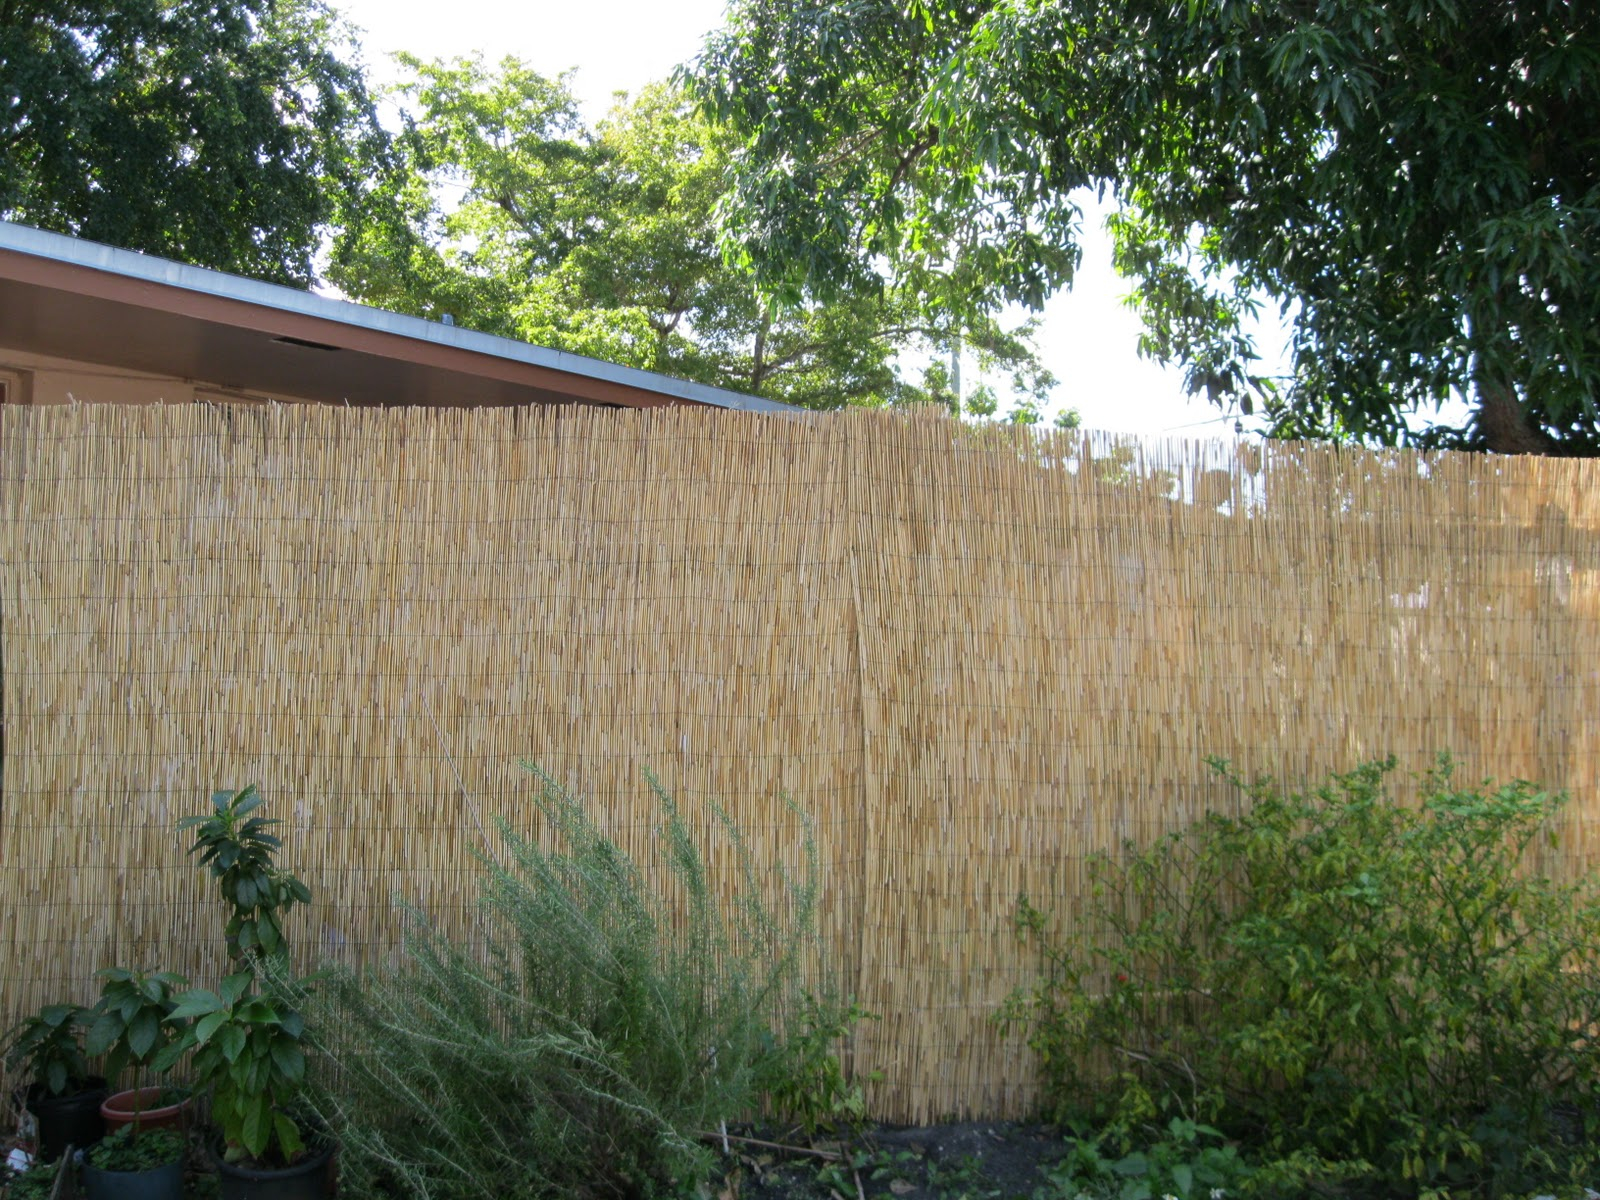 1 Landscaping Landscaping Ideas For Backyard X Scapes Rolled Bamboo throughout Backyard X Scapes Rolled Bamboo Fencing